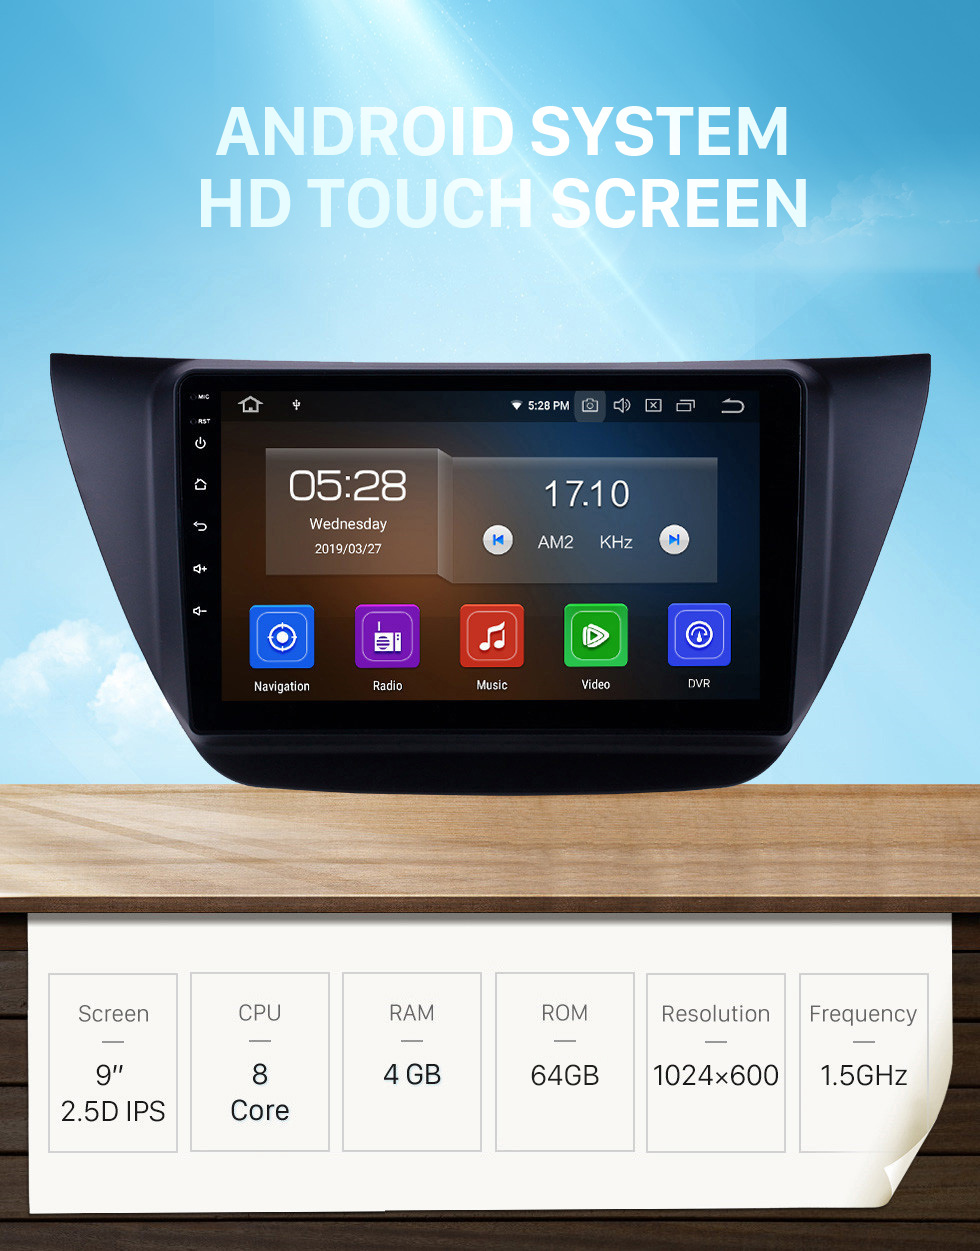 Seicane HD Touchscreen 9 inch Android 10.0 GPS Navigation Radio for 2006-2010 MITSUBISHI LANCER IX with WIFI Carplay Bluetooth USB support RDS OBD2 DVR 4G